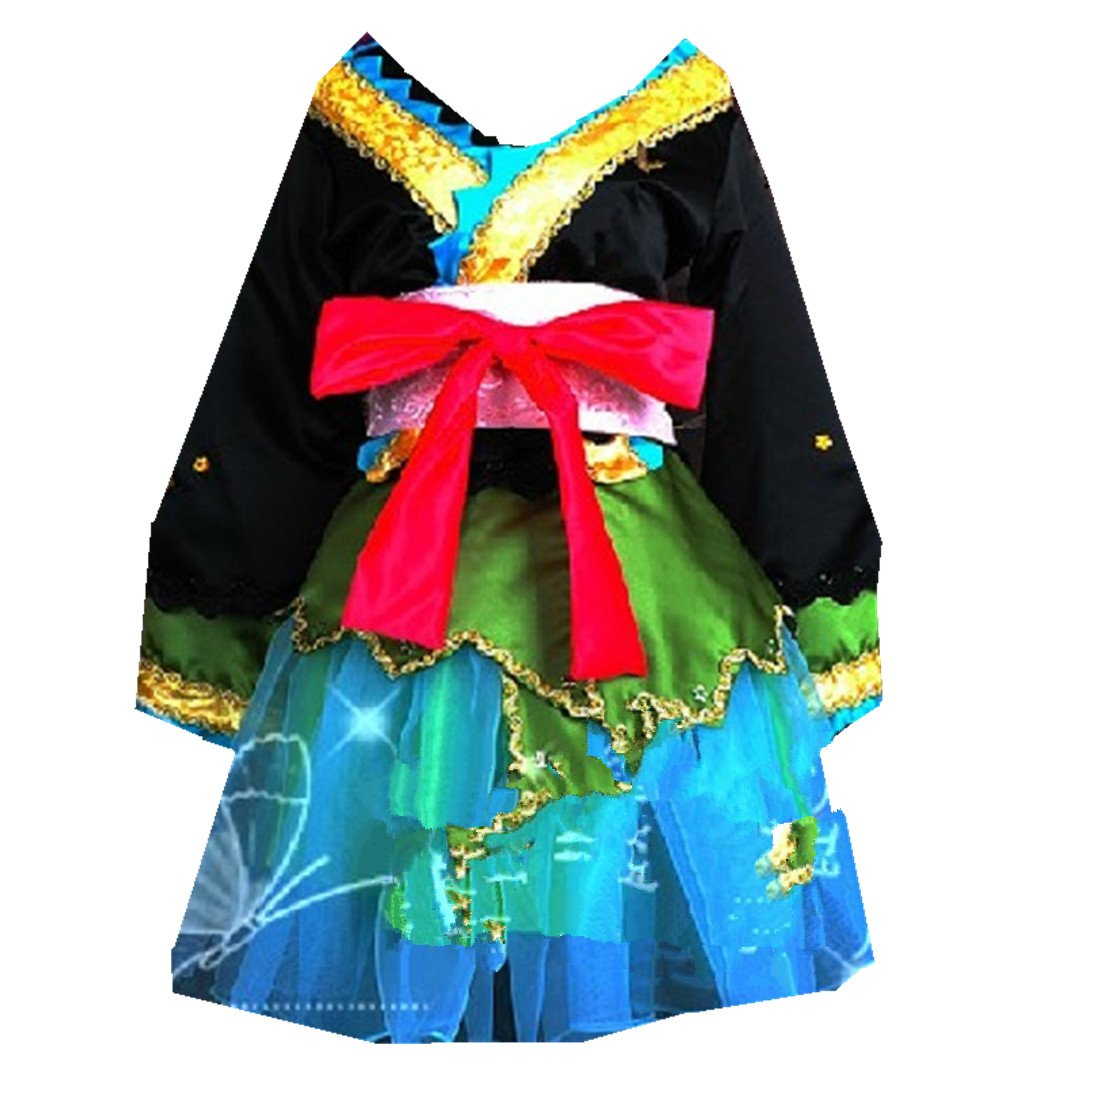 Mister Bear Vocaloid Lolita Project Diva Miku Hatsune Japan Kimono Cosplay Costume Dress